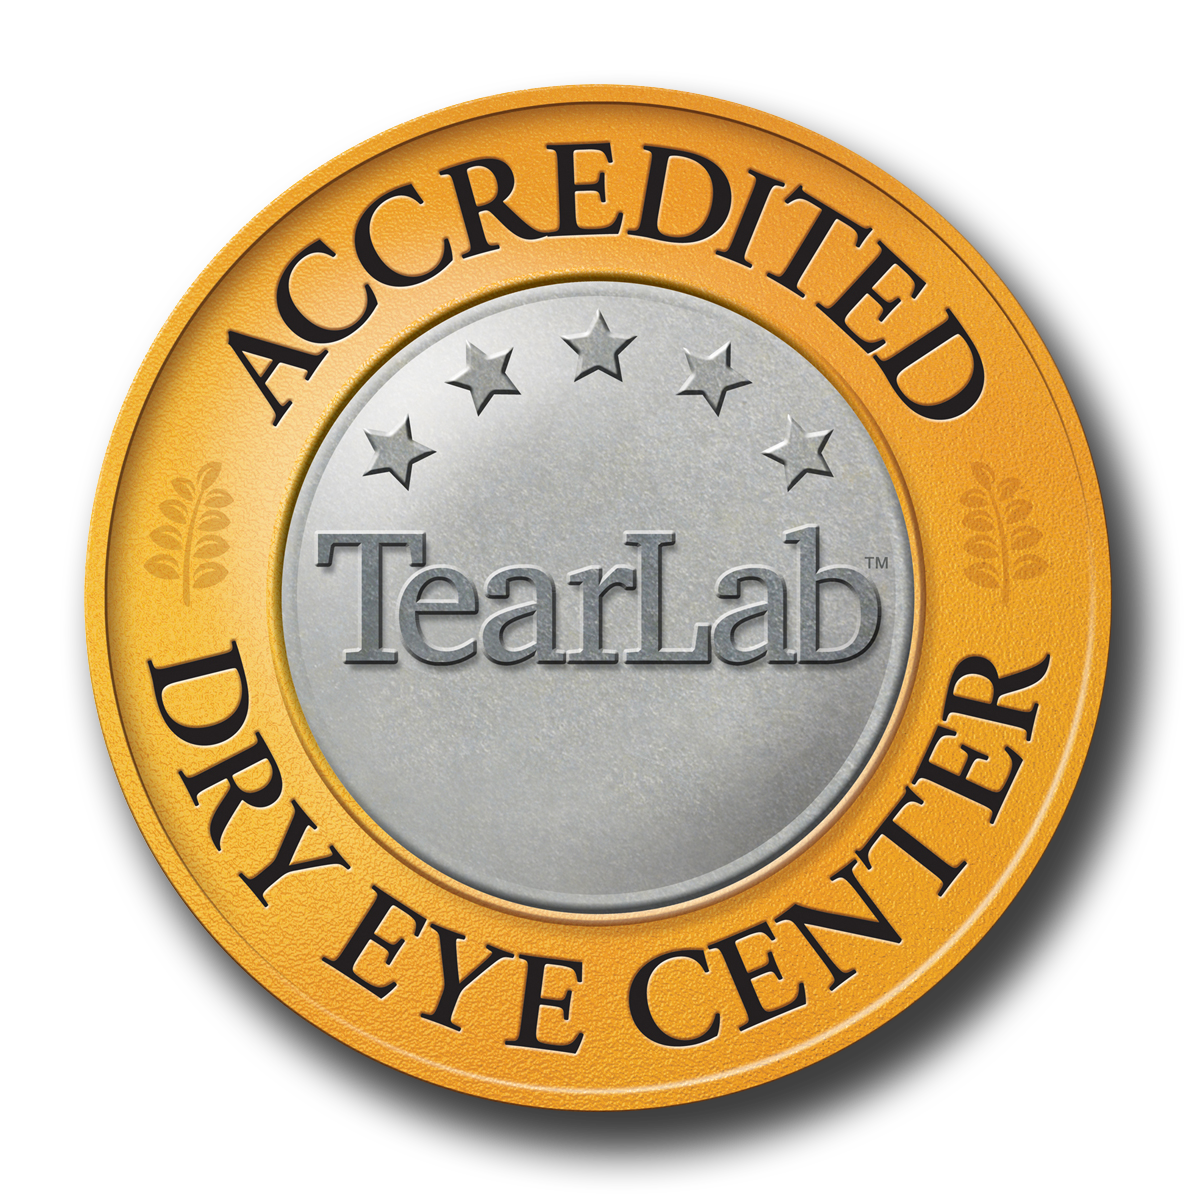 Accredited Dry Eye Center logo